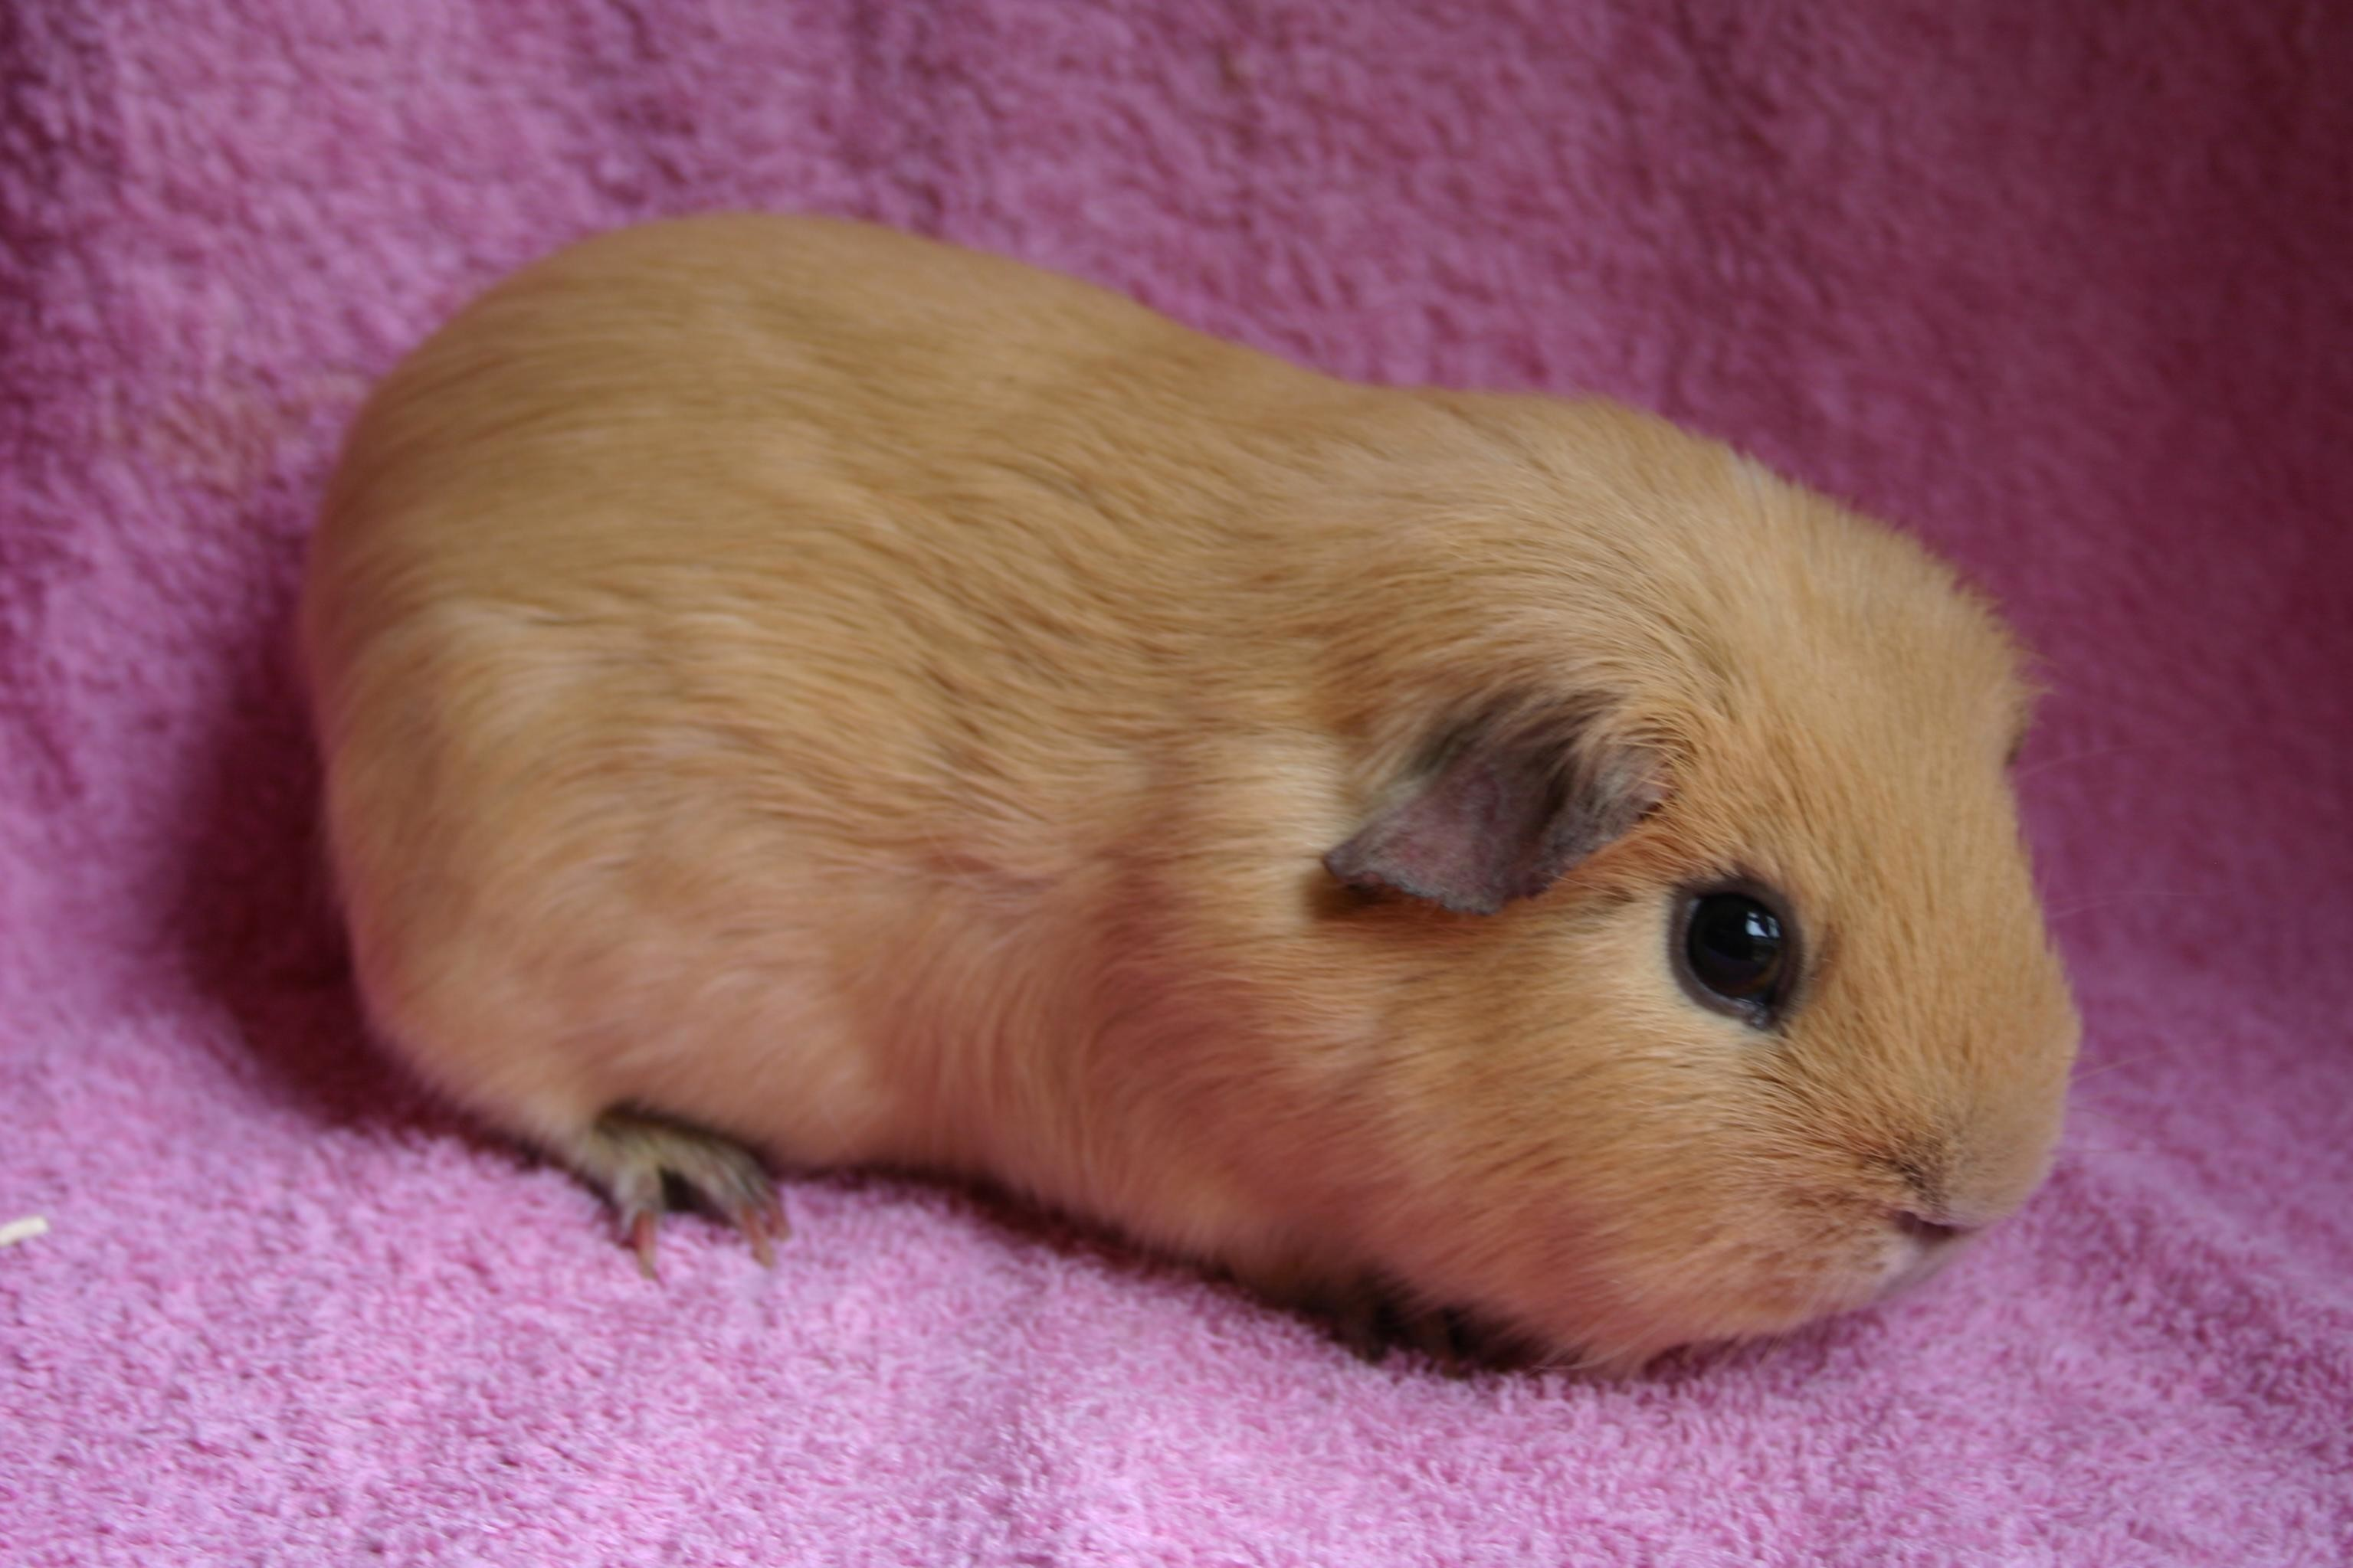 Res: 3071x2047, Pictures Of Baby Guinea Pigs Wallpaper HD Base - HD Wallpapers